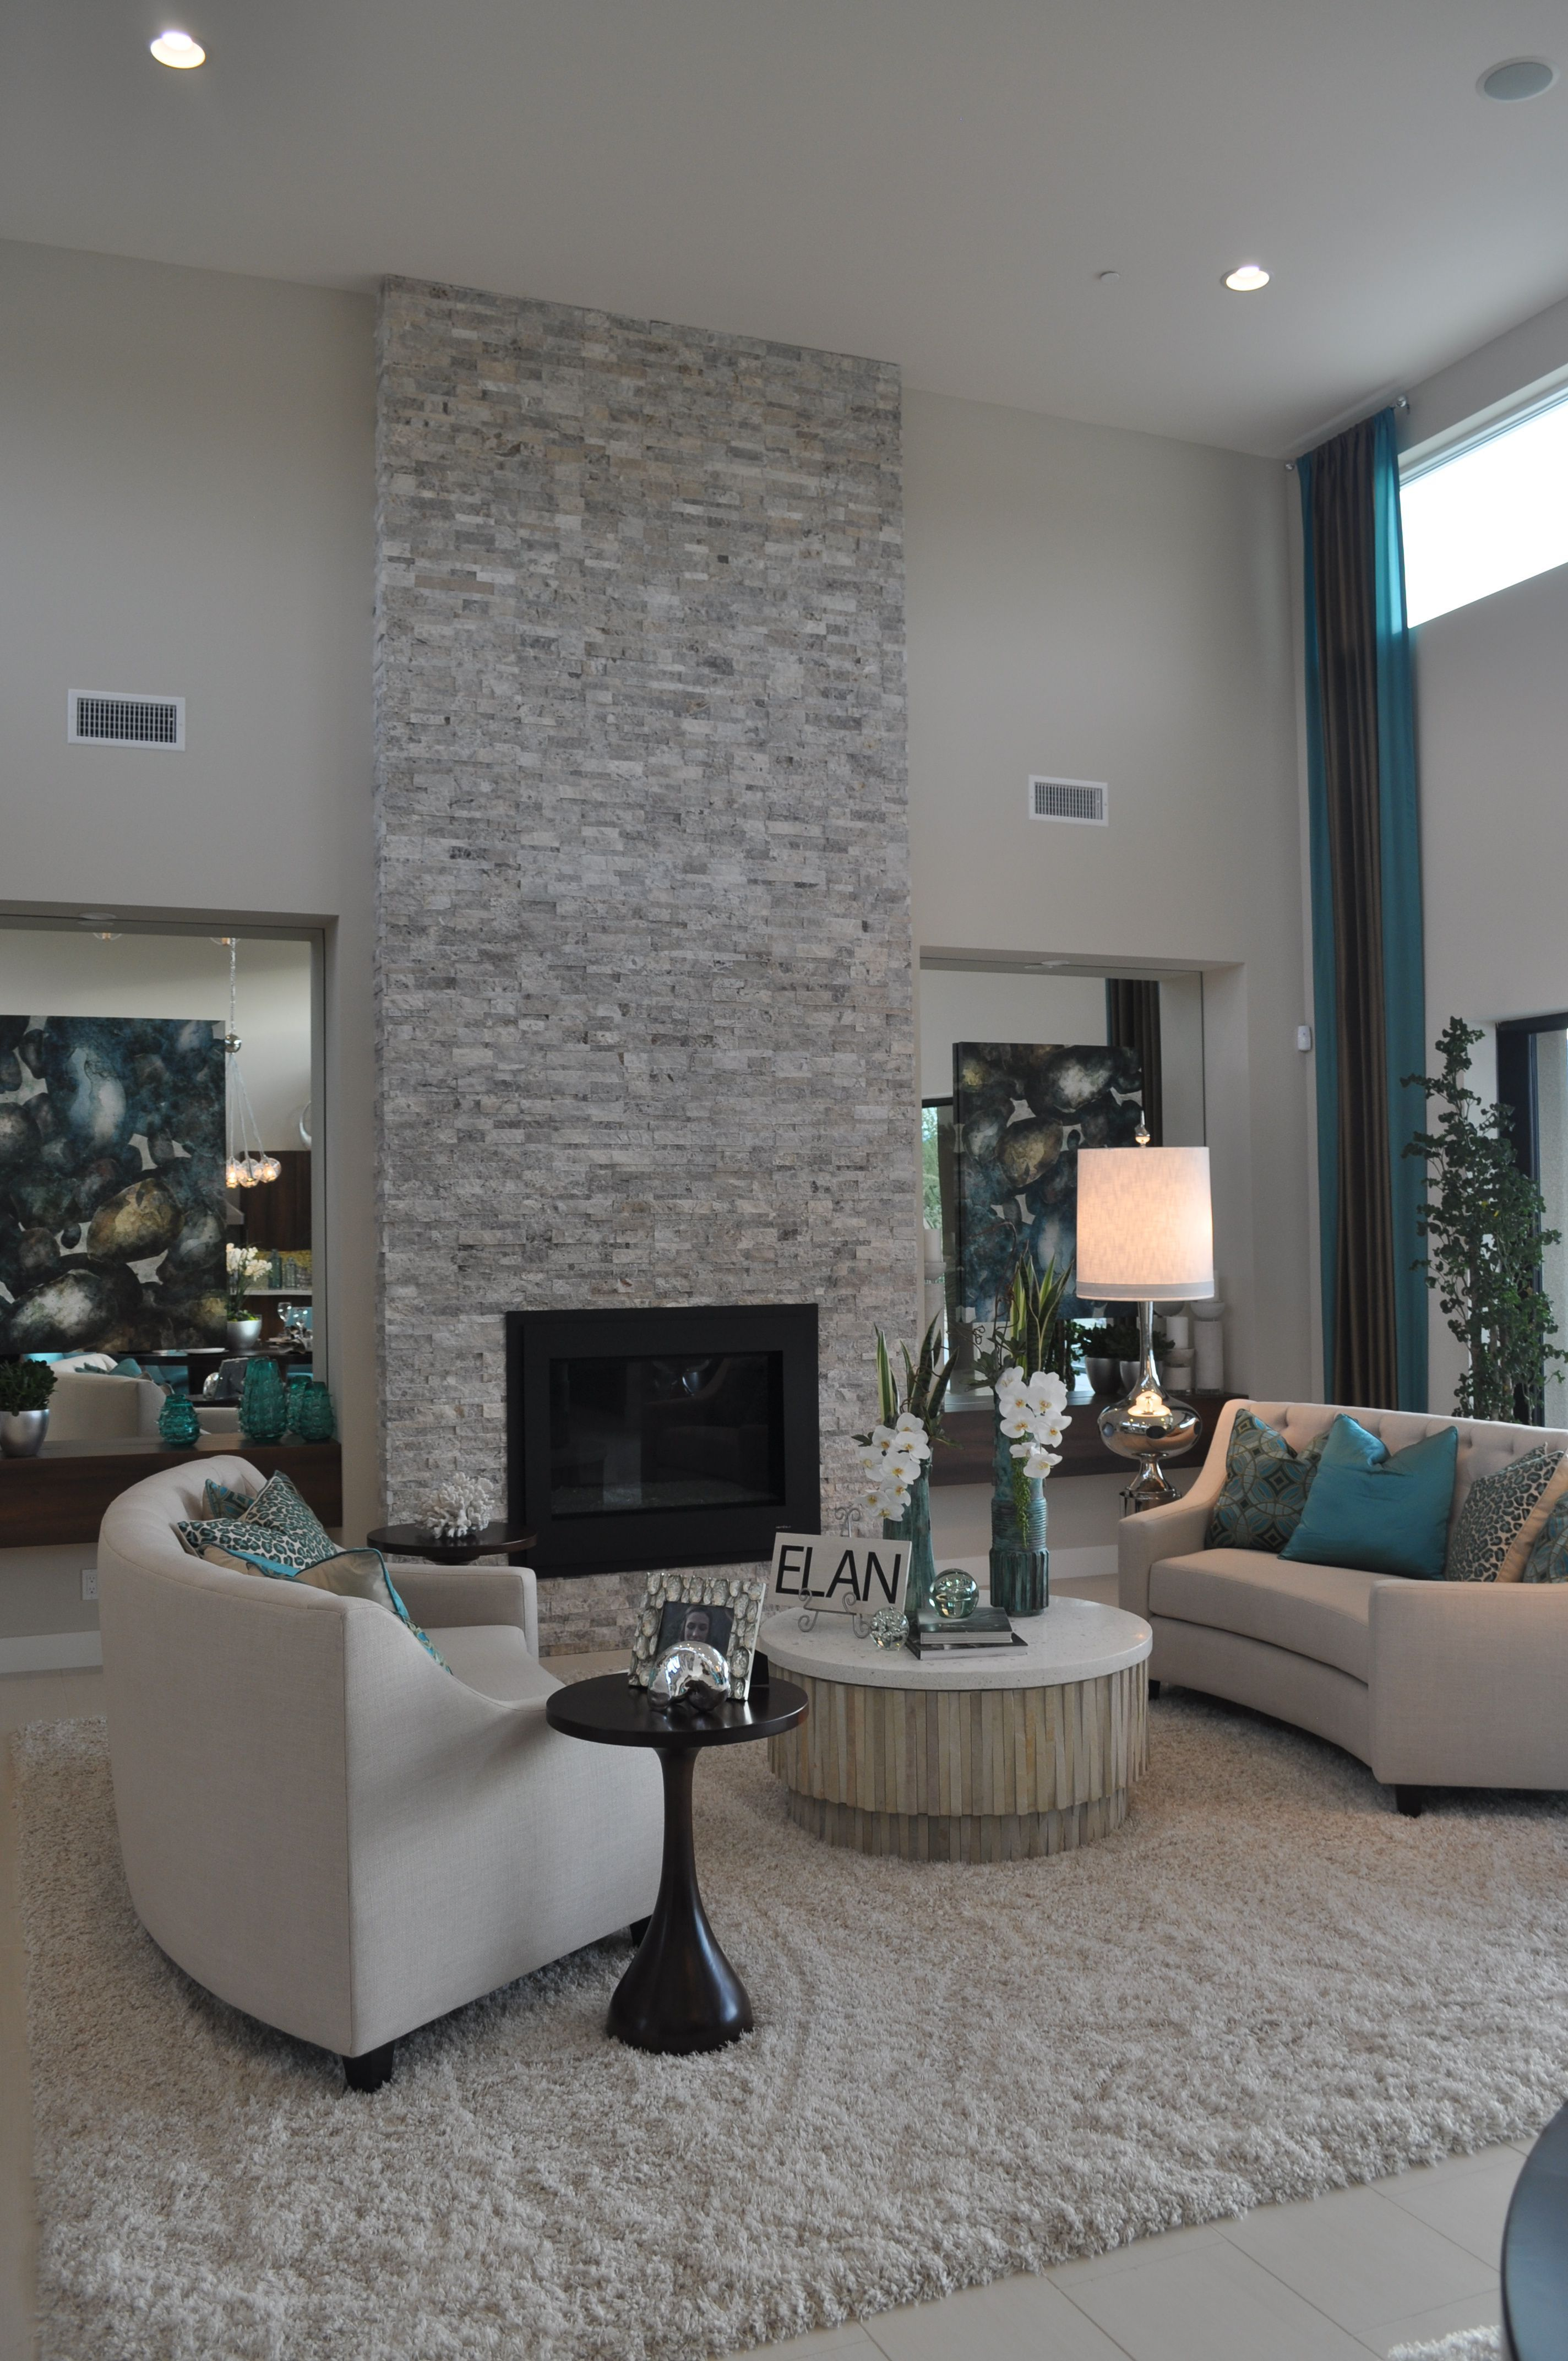 For This Space The Focal Point Is The Fireplace It Is Tall